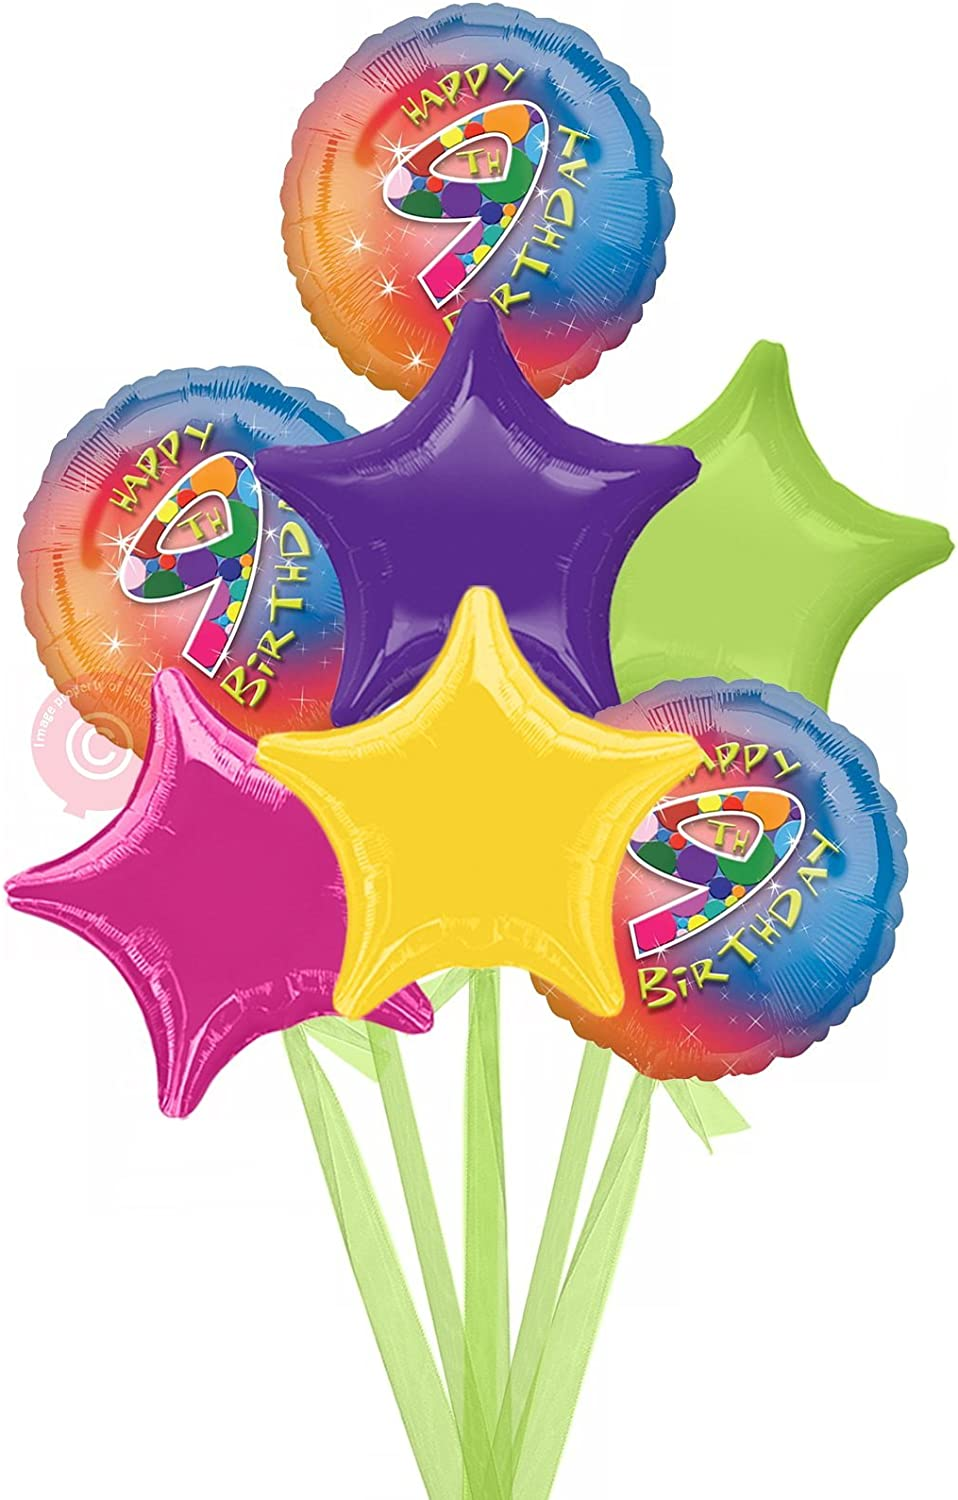 No 9 Happy 9th Birthday Girl  Inflated Birthday Helium Balloon Delivered in a Box  Bigger Bouquet  7 Balloons  Bloonaway